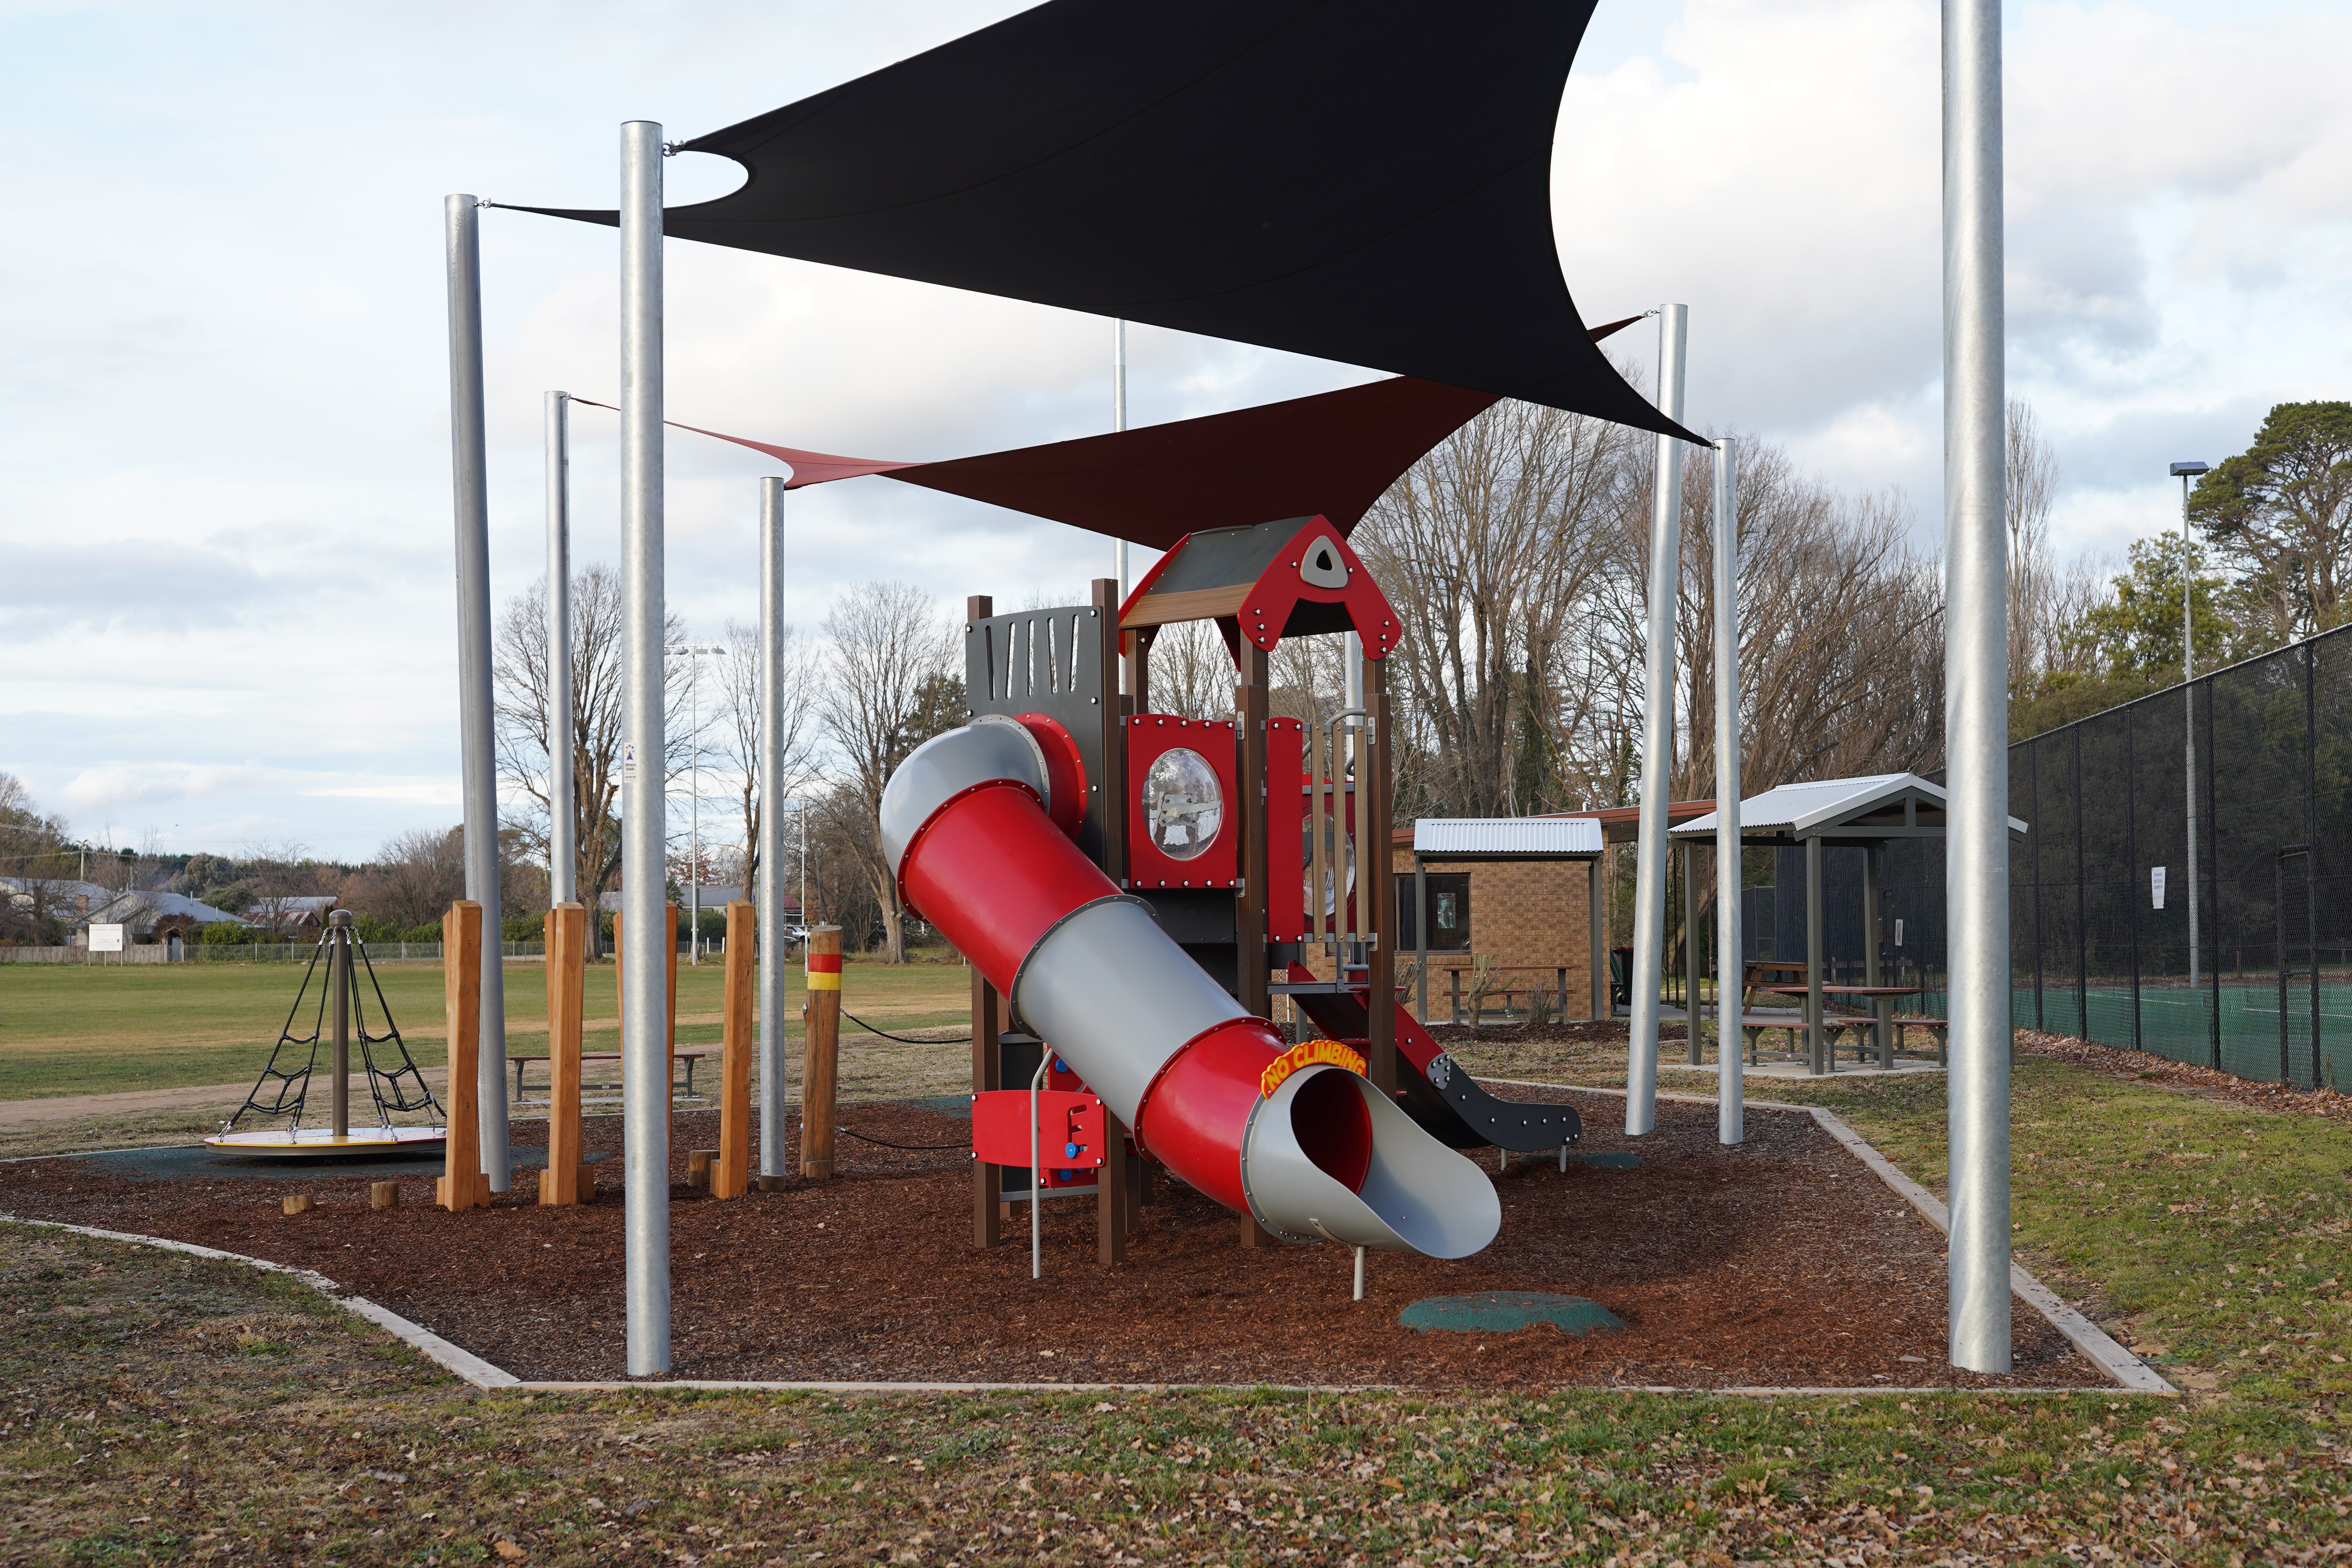 Braidwood Recreation Grounds and Playground - VIC Tourism